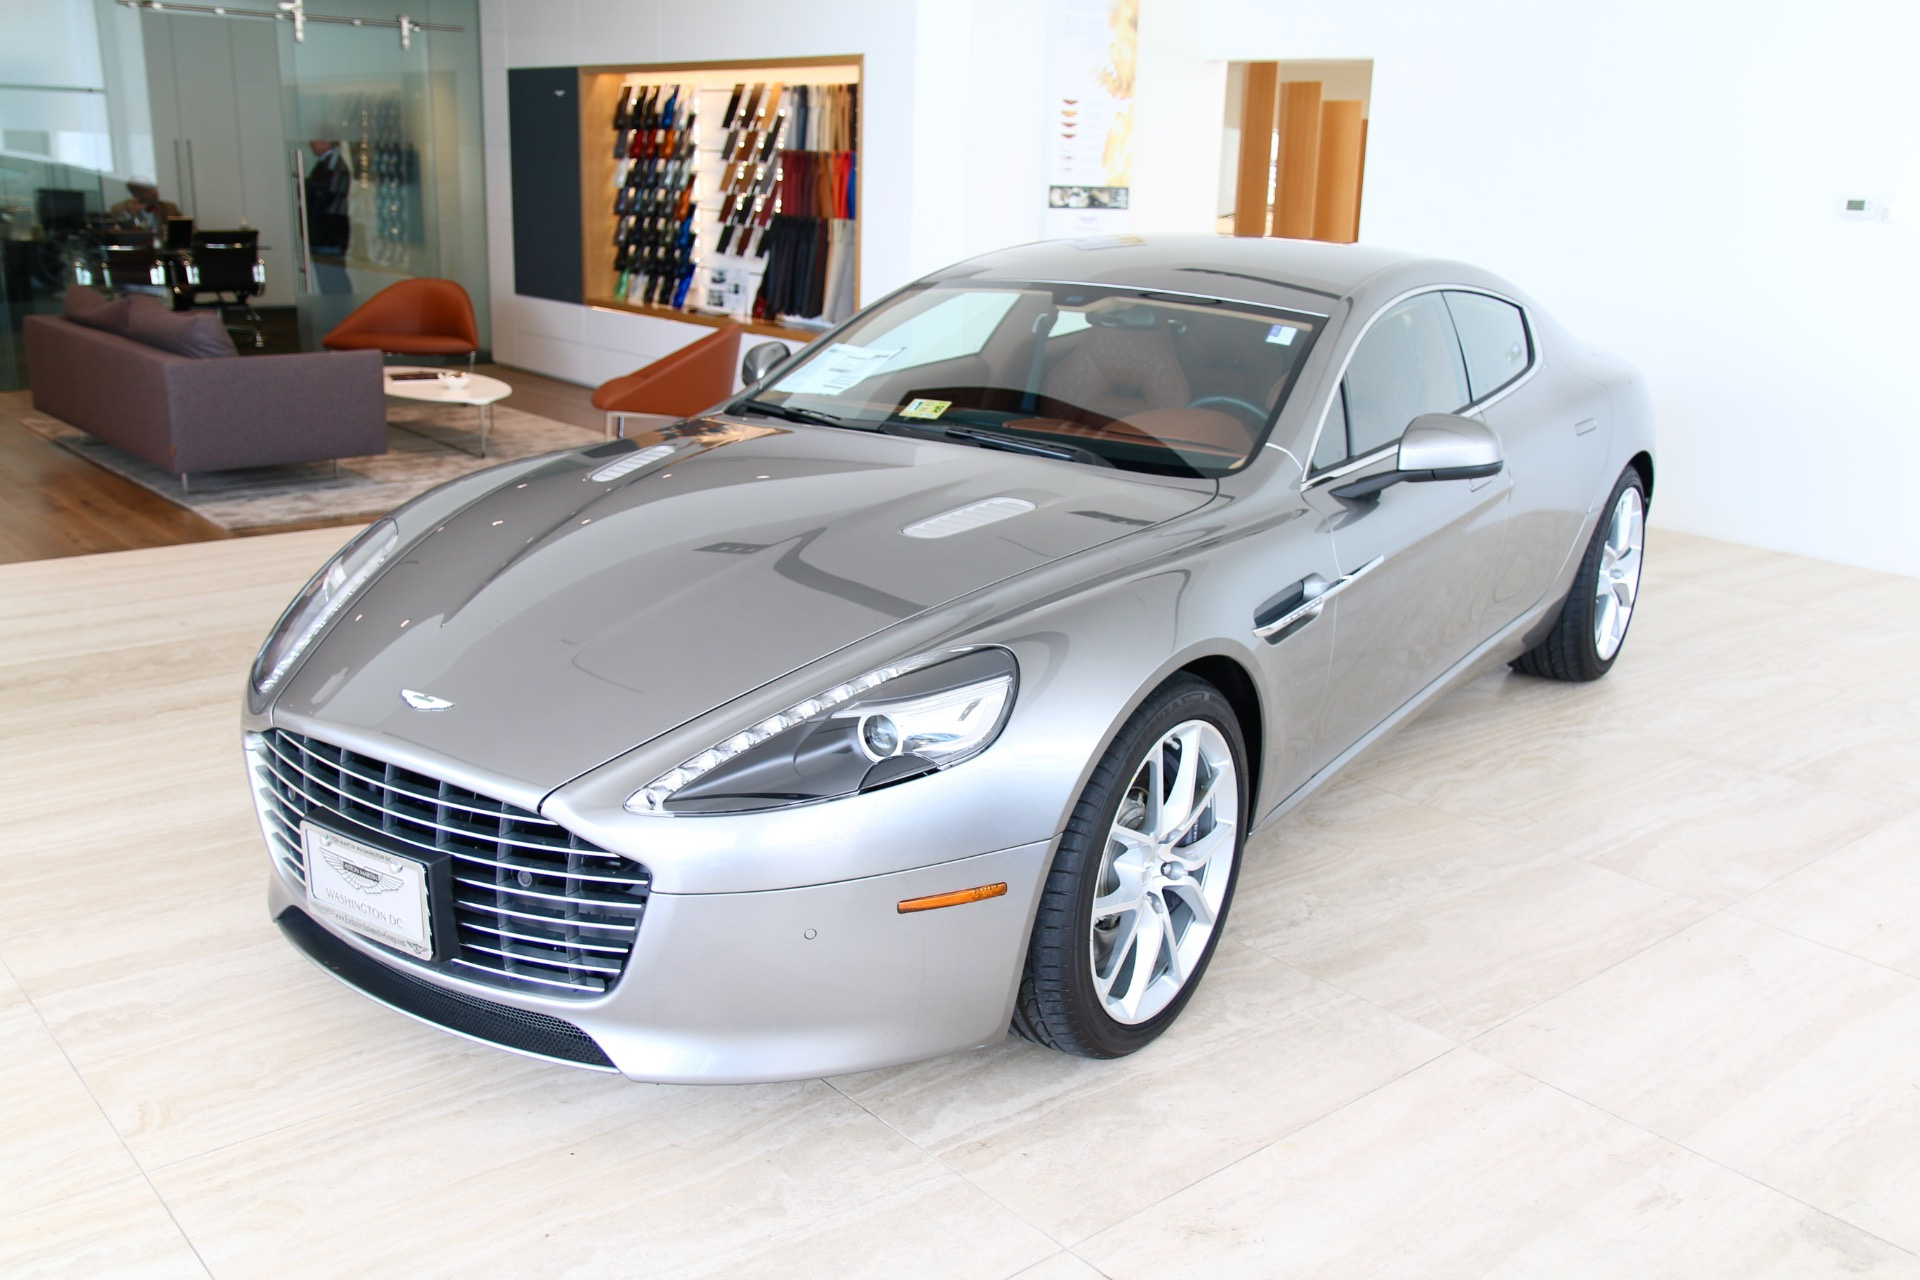 2017 aston martin rapide s stock 7gf05728 for sale near vienna va va aston martin dealer. Black Bedroom Furniture Sets. Home Design Ideas